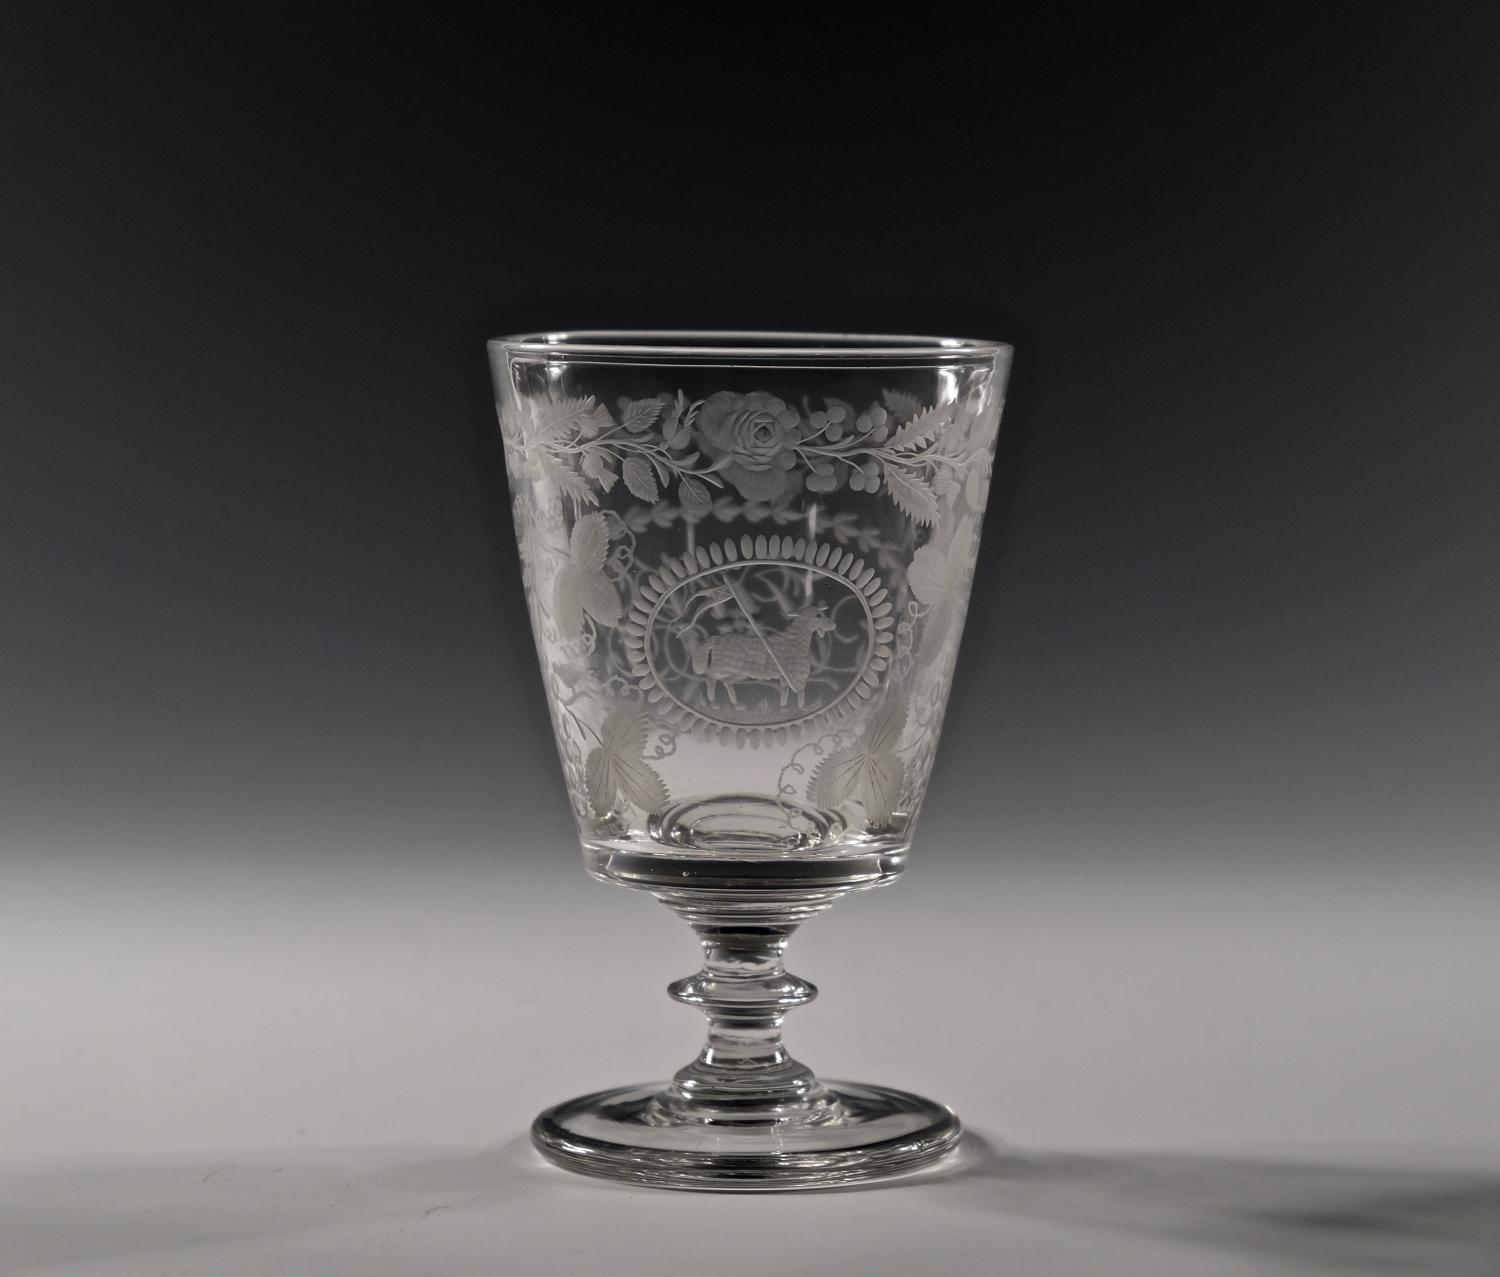 Engraved bucket bowl rummer English C1820